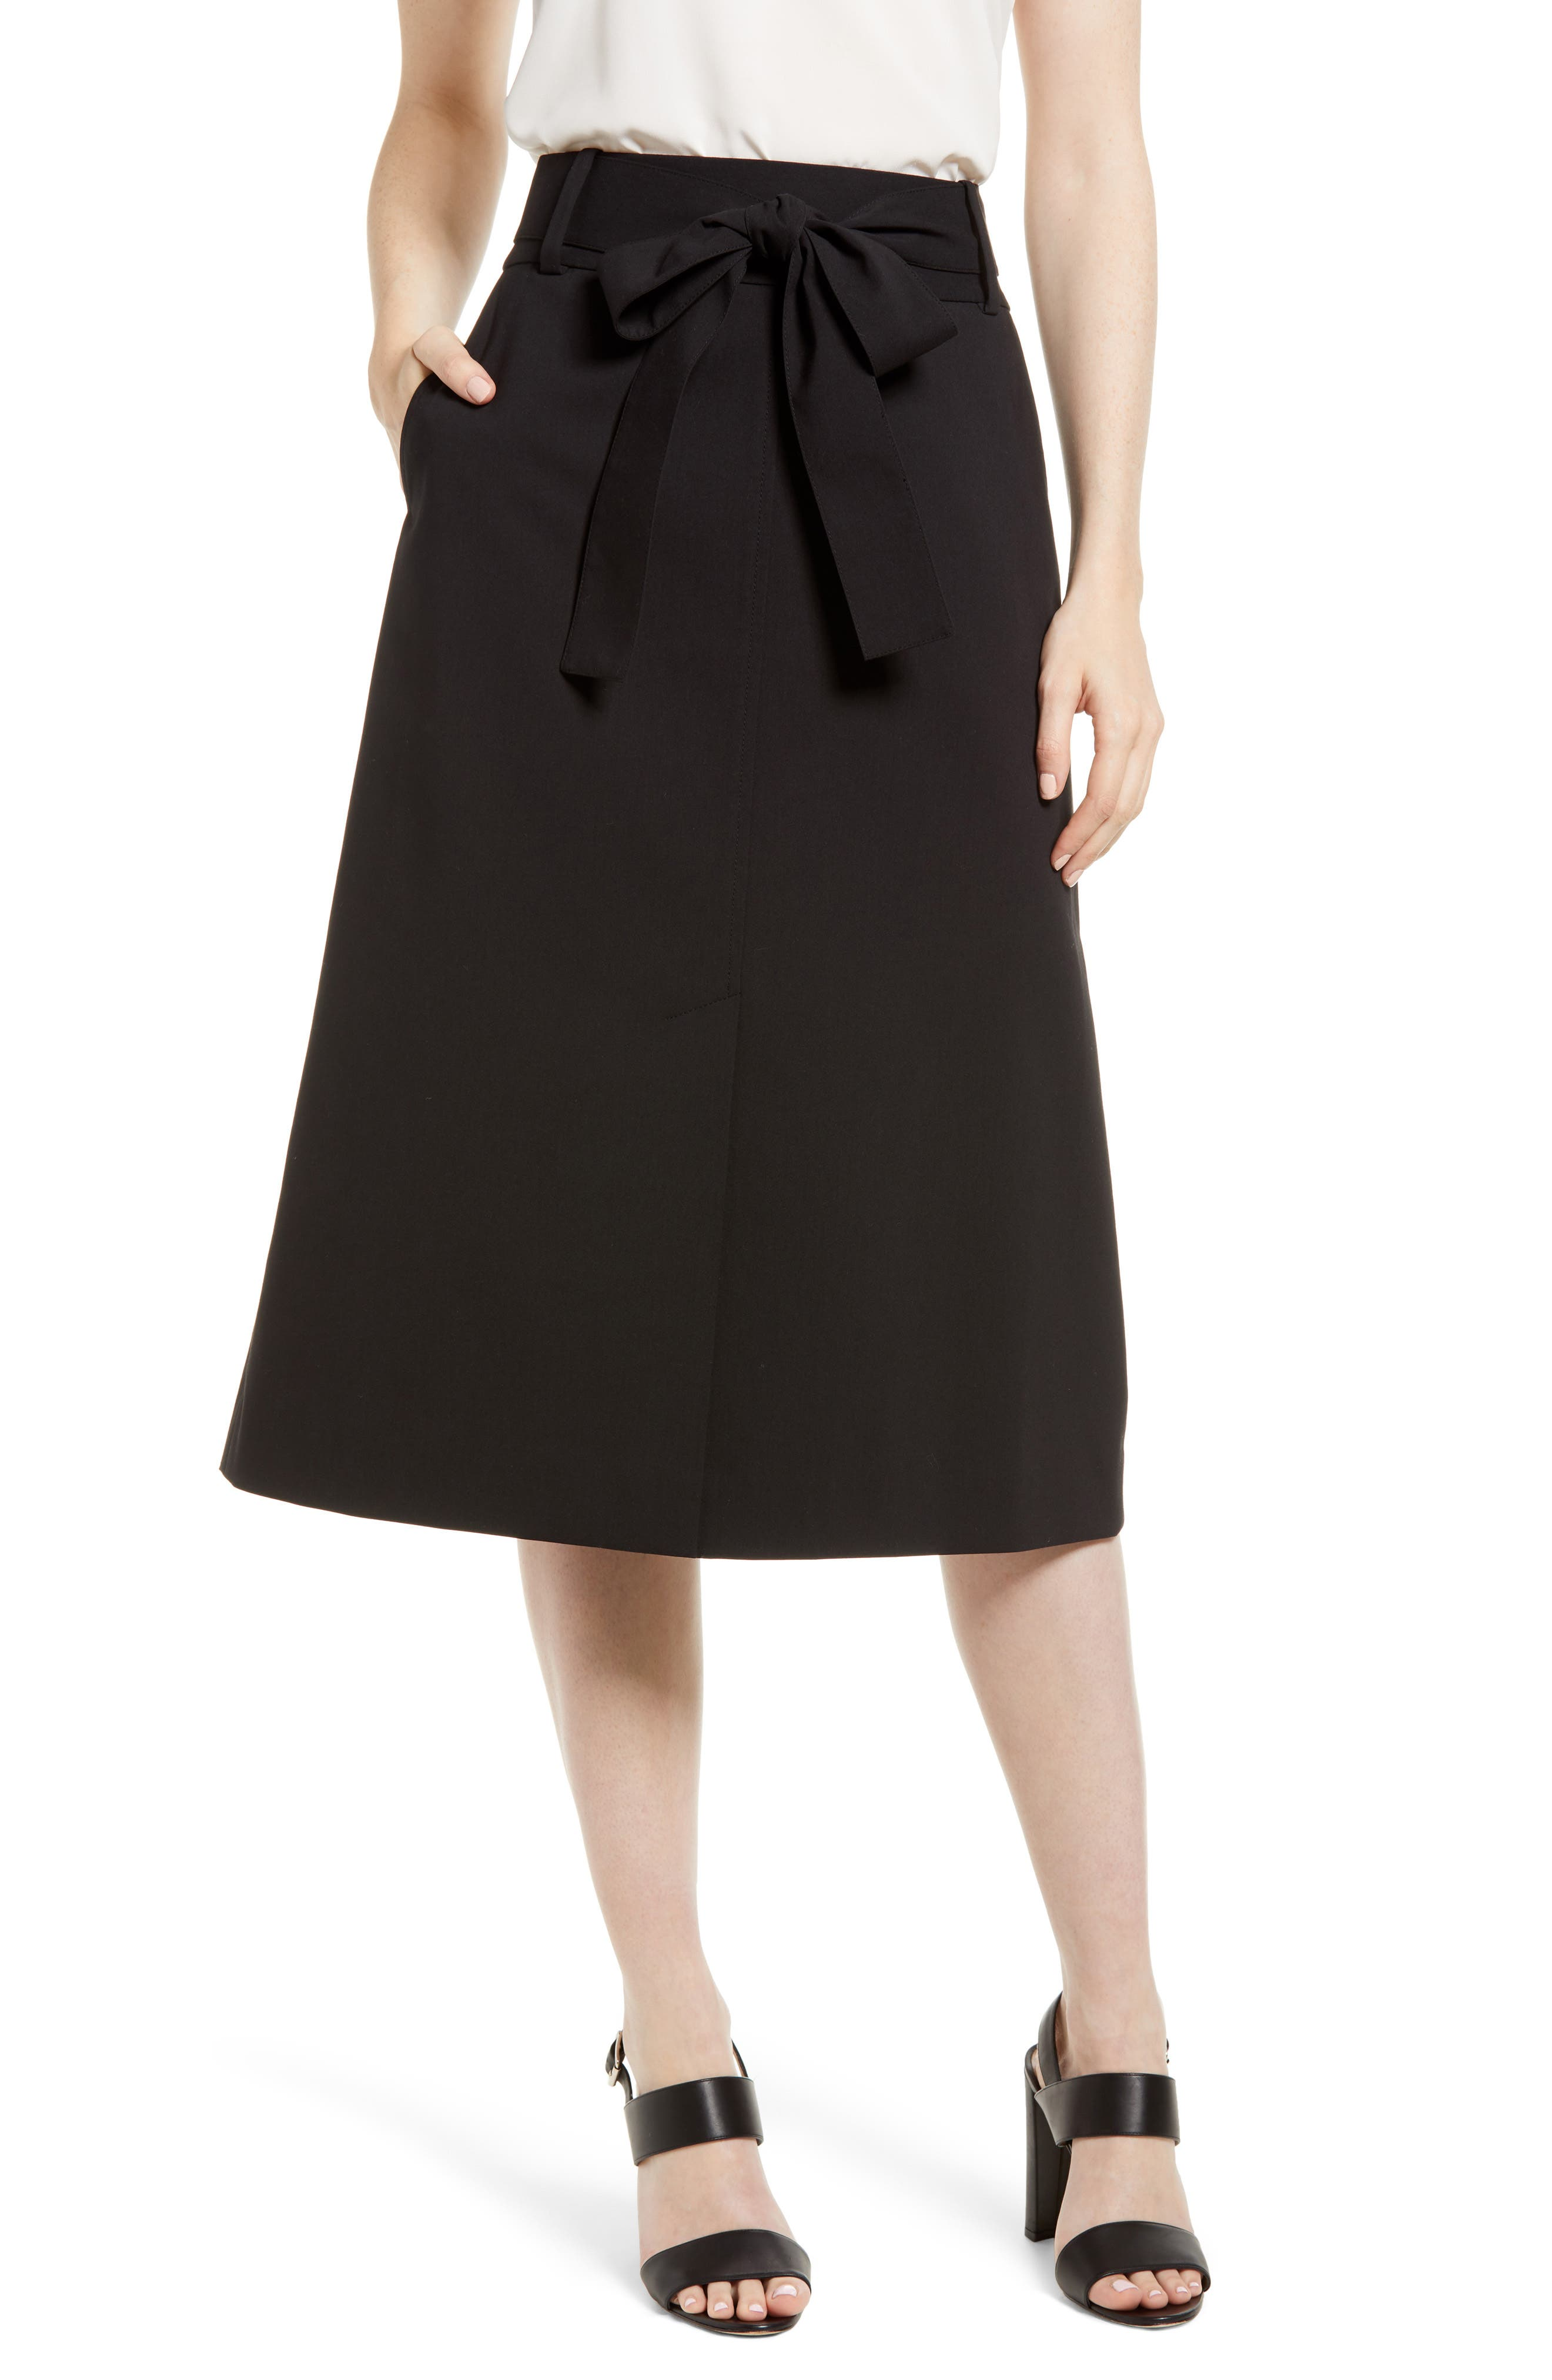 EMERSON ROSE Tie Waist Skirt, Main, color, 001